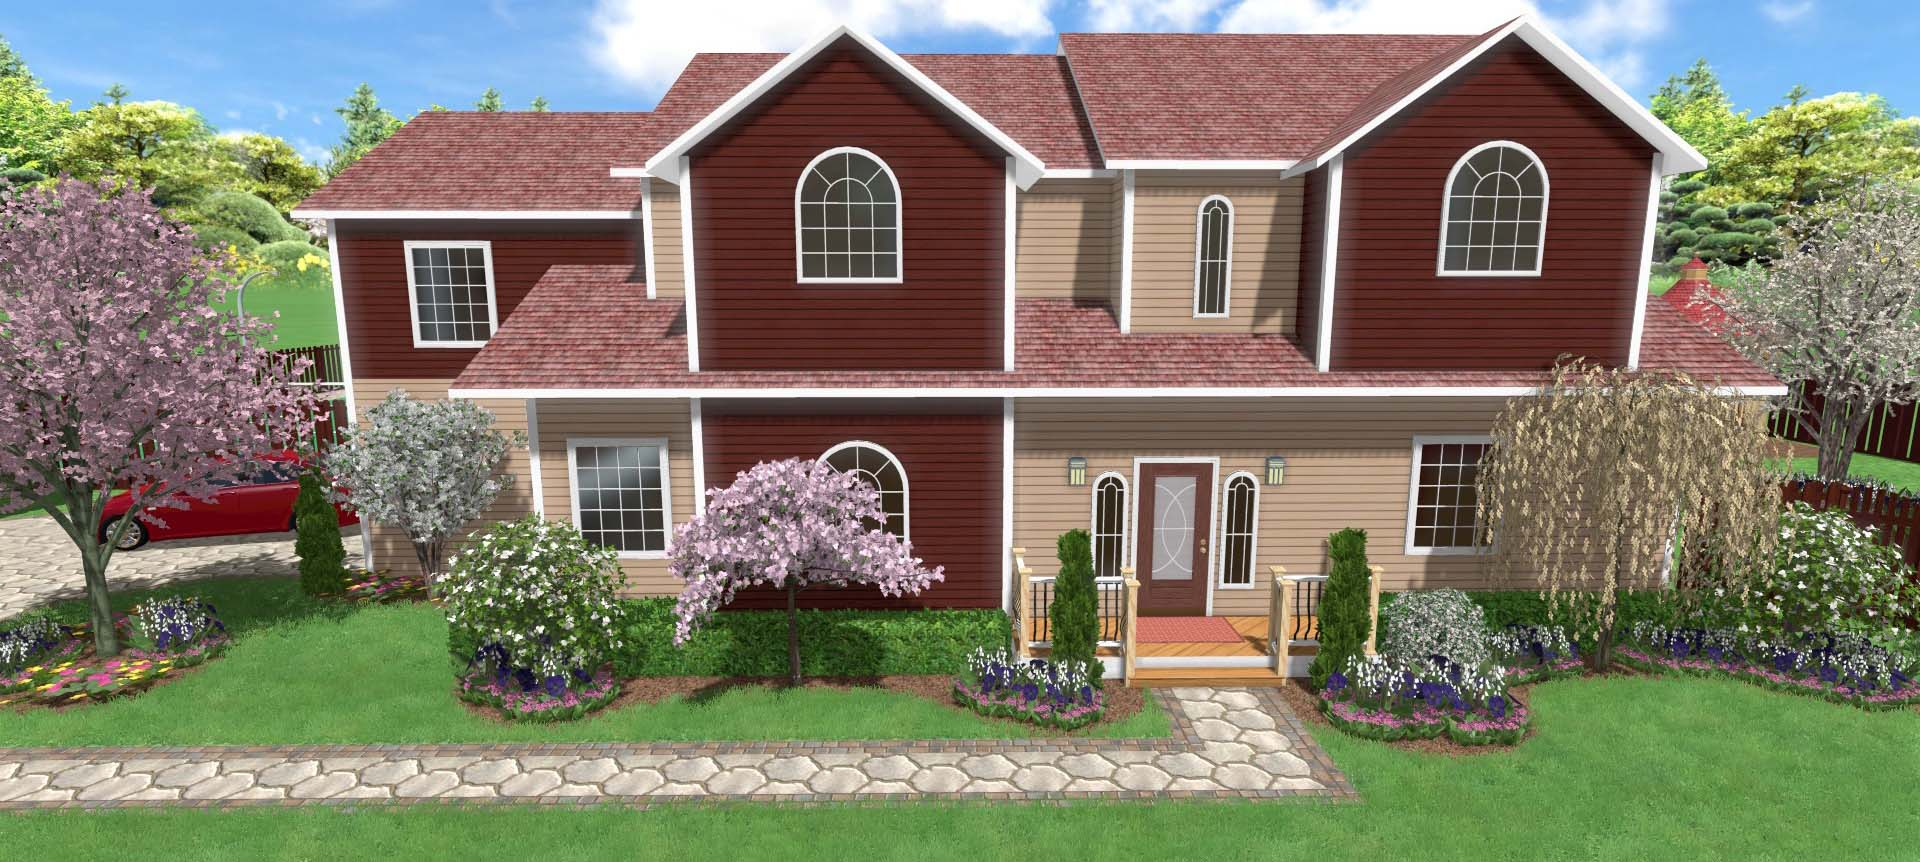 Home landscaping software for New build home garden design